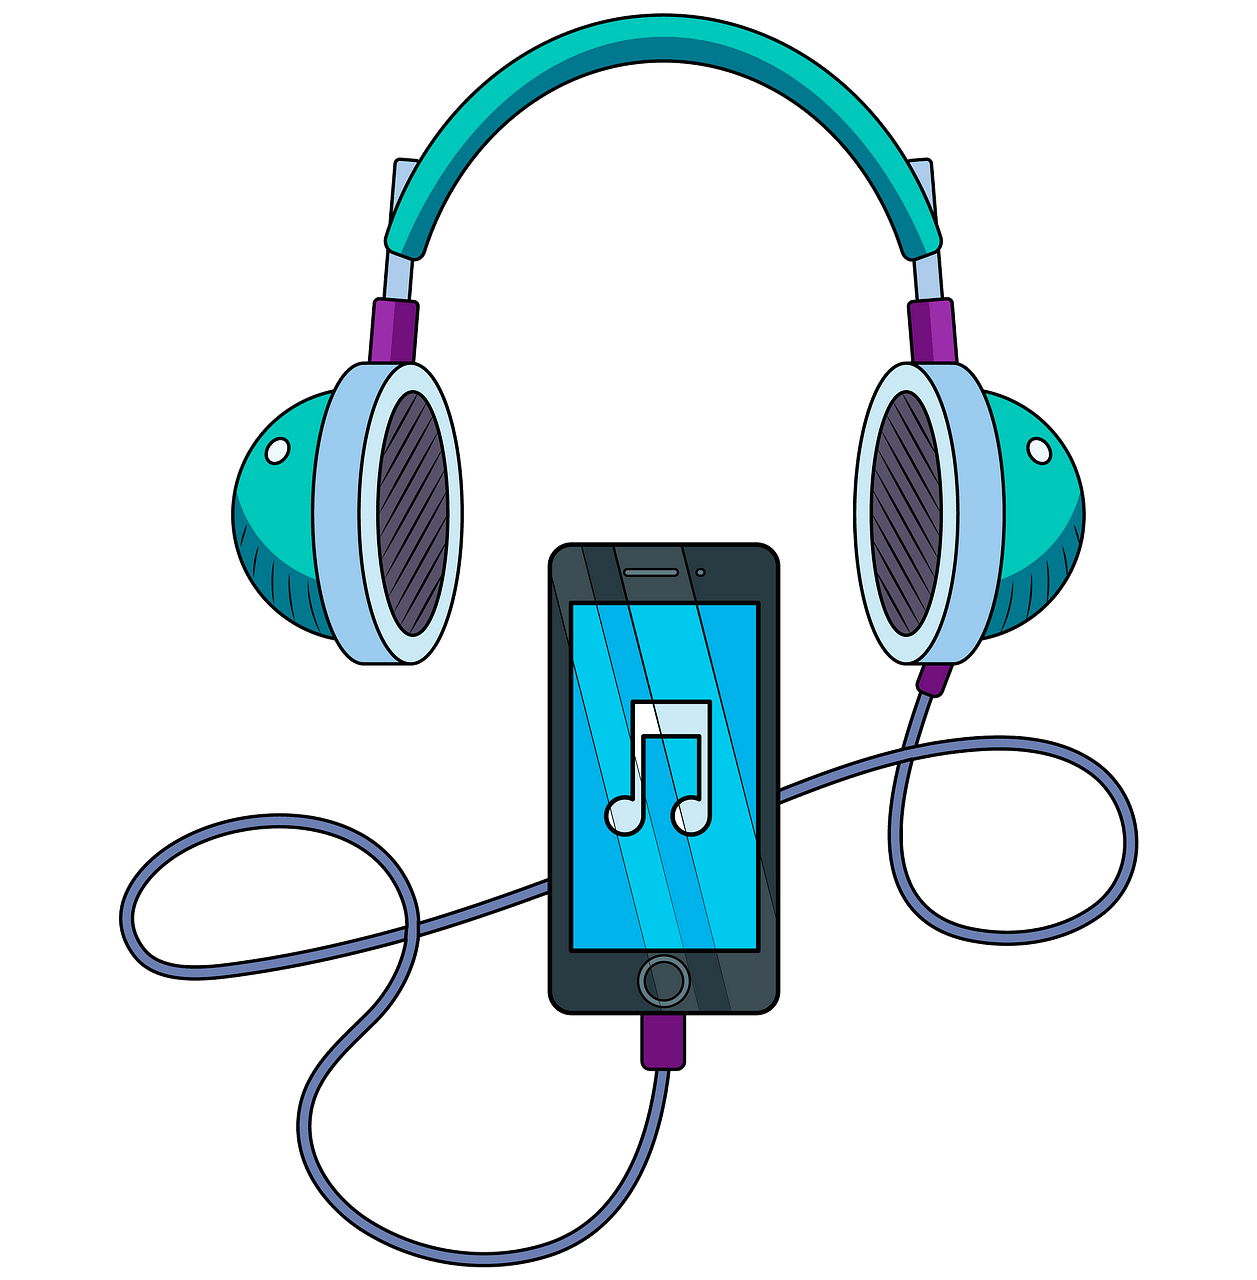 Music player and headphones clipart. Free download..